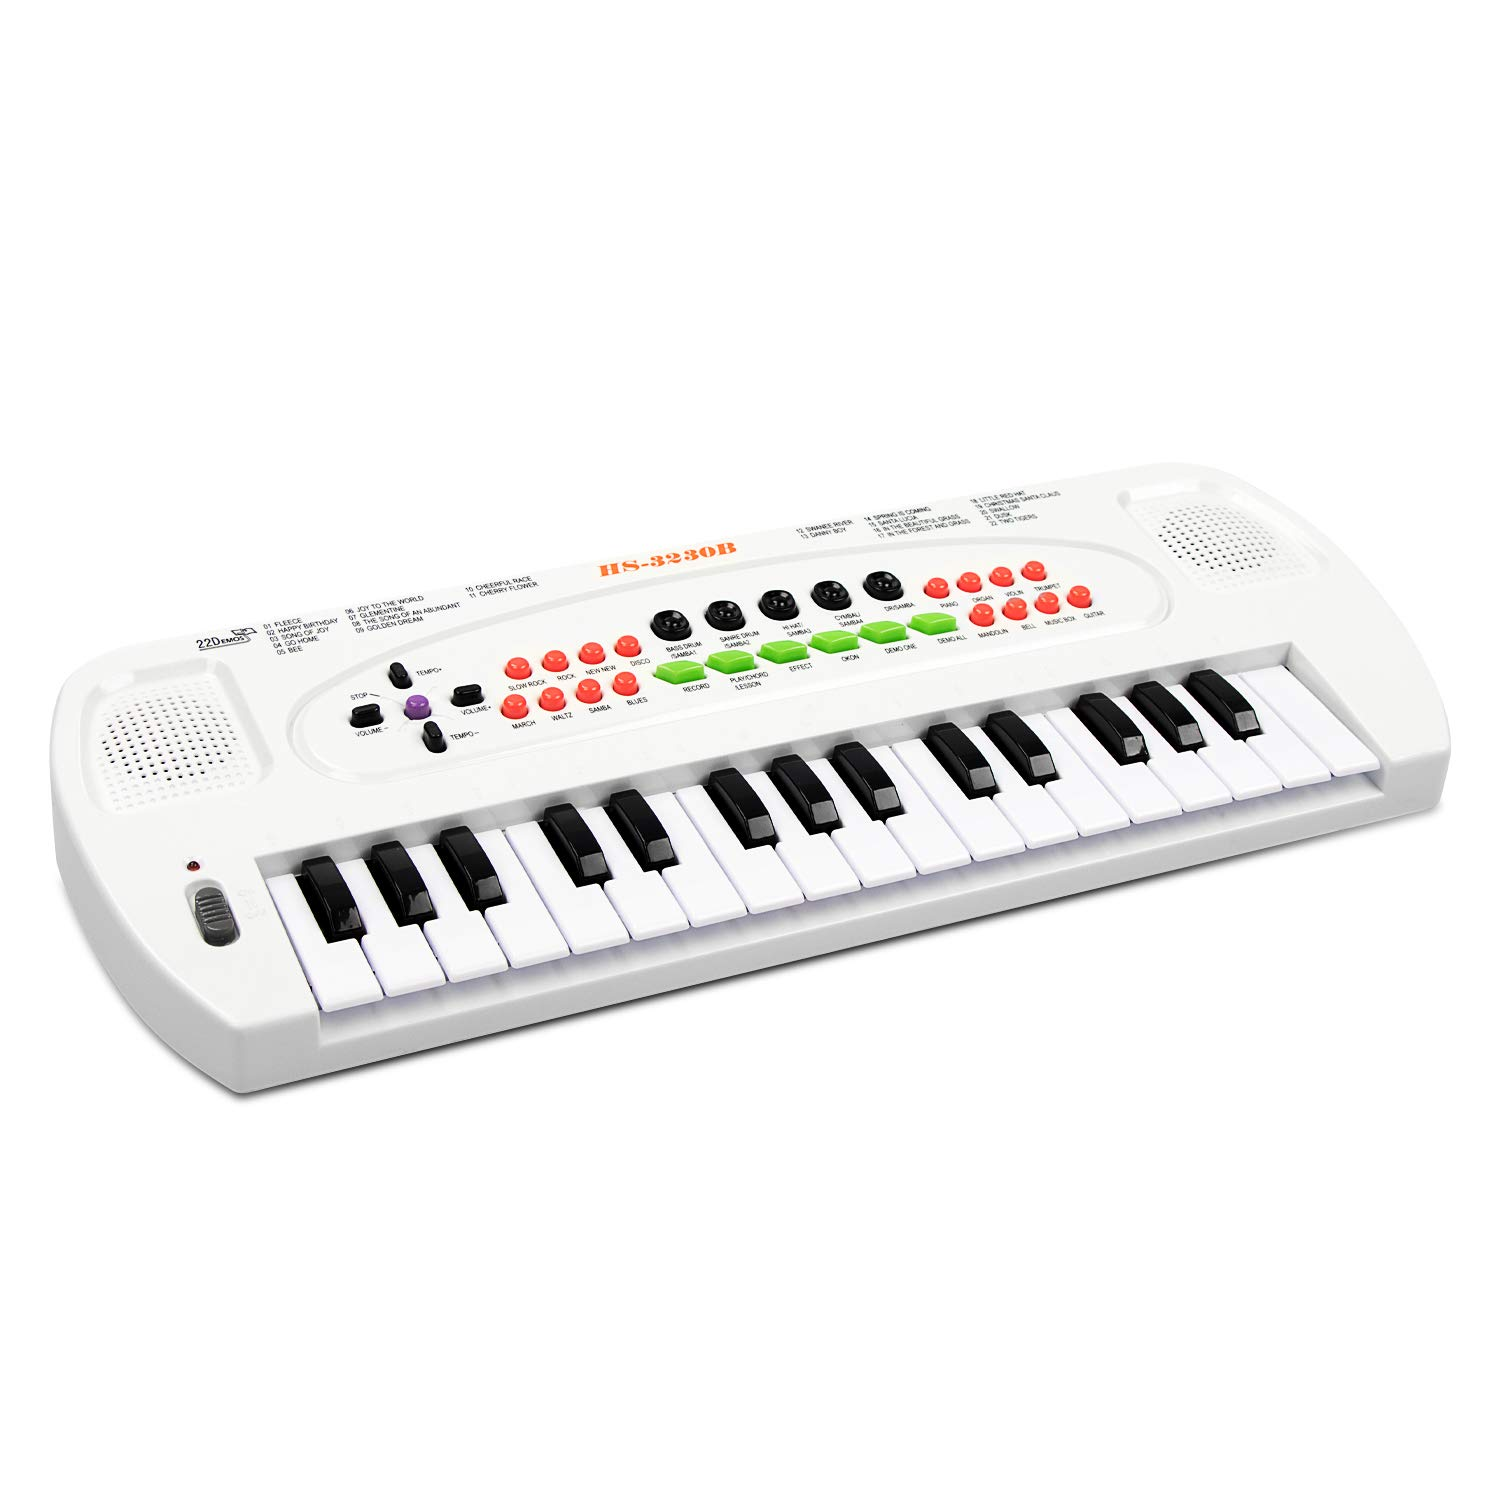 aPerfectLife Keyboard Piano Kids, 32 Keys Multifunction Electronic Kids Keyboard Piano Music Instrument for Toddler with Microphone (White) by aPerfectLife